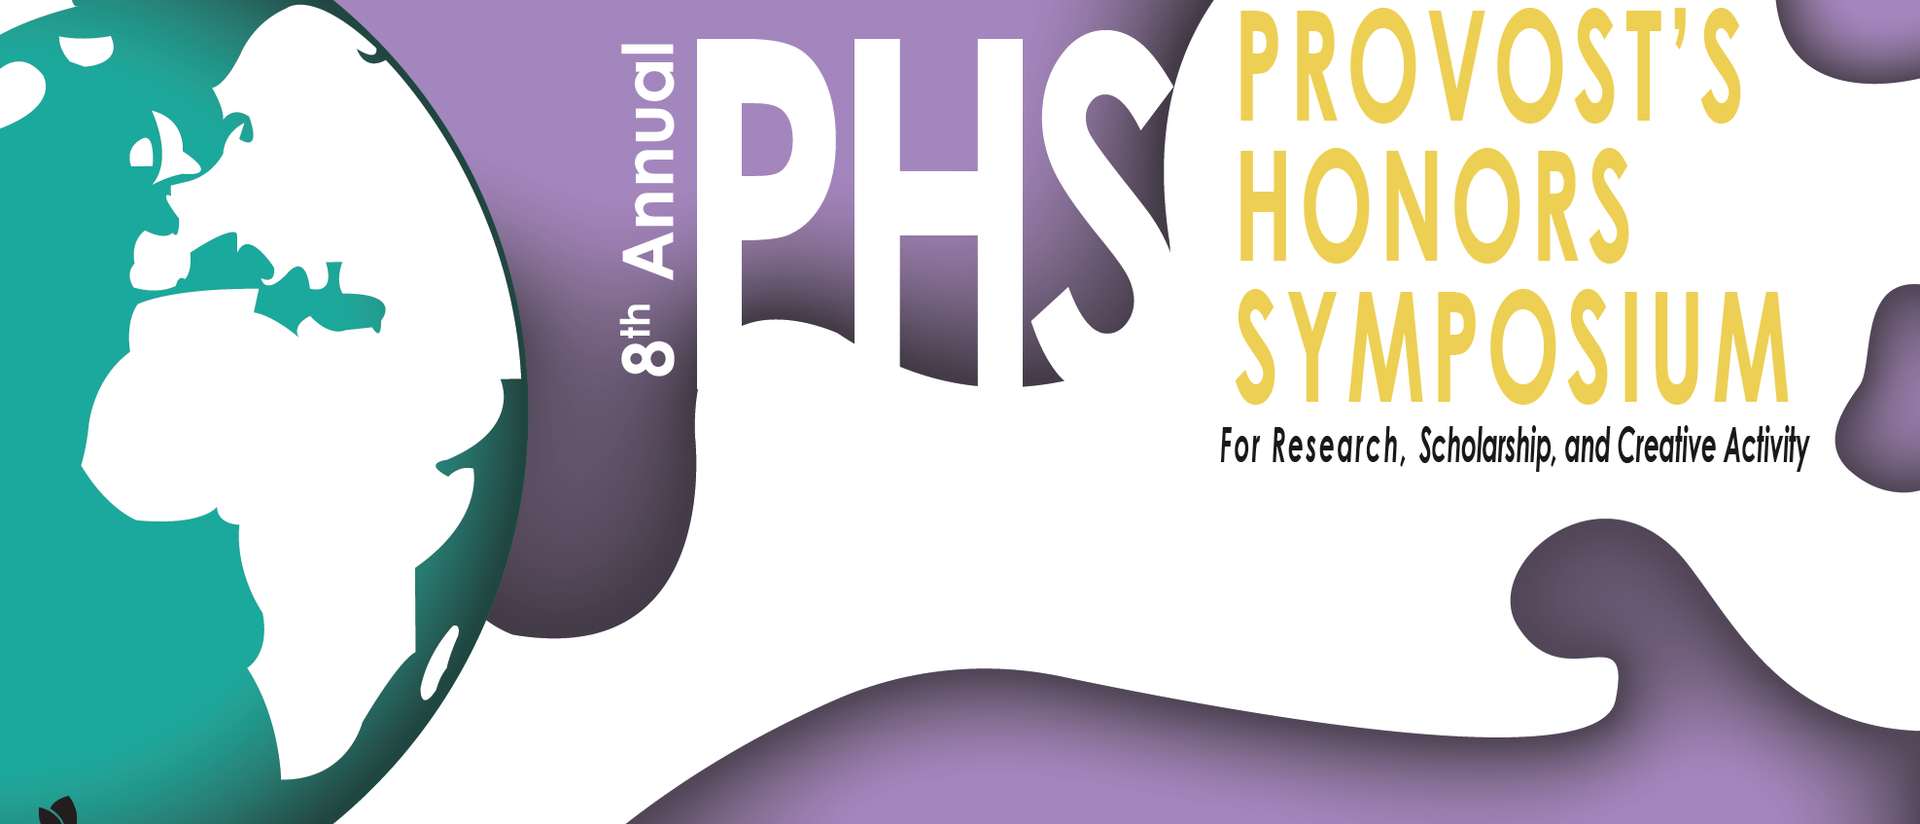 Provost Honors Symposium graphic web banner